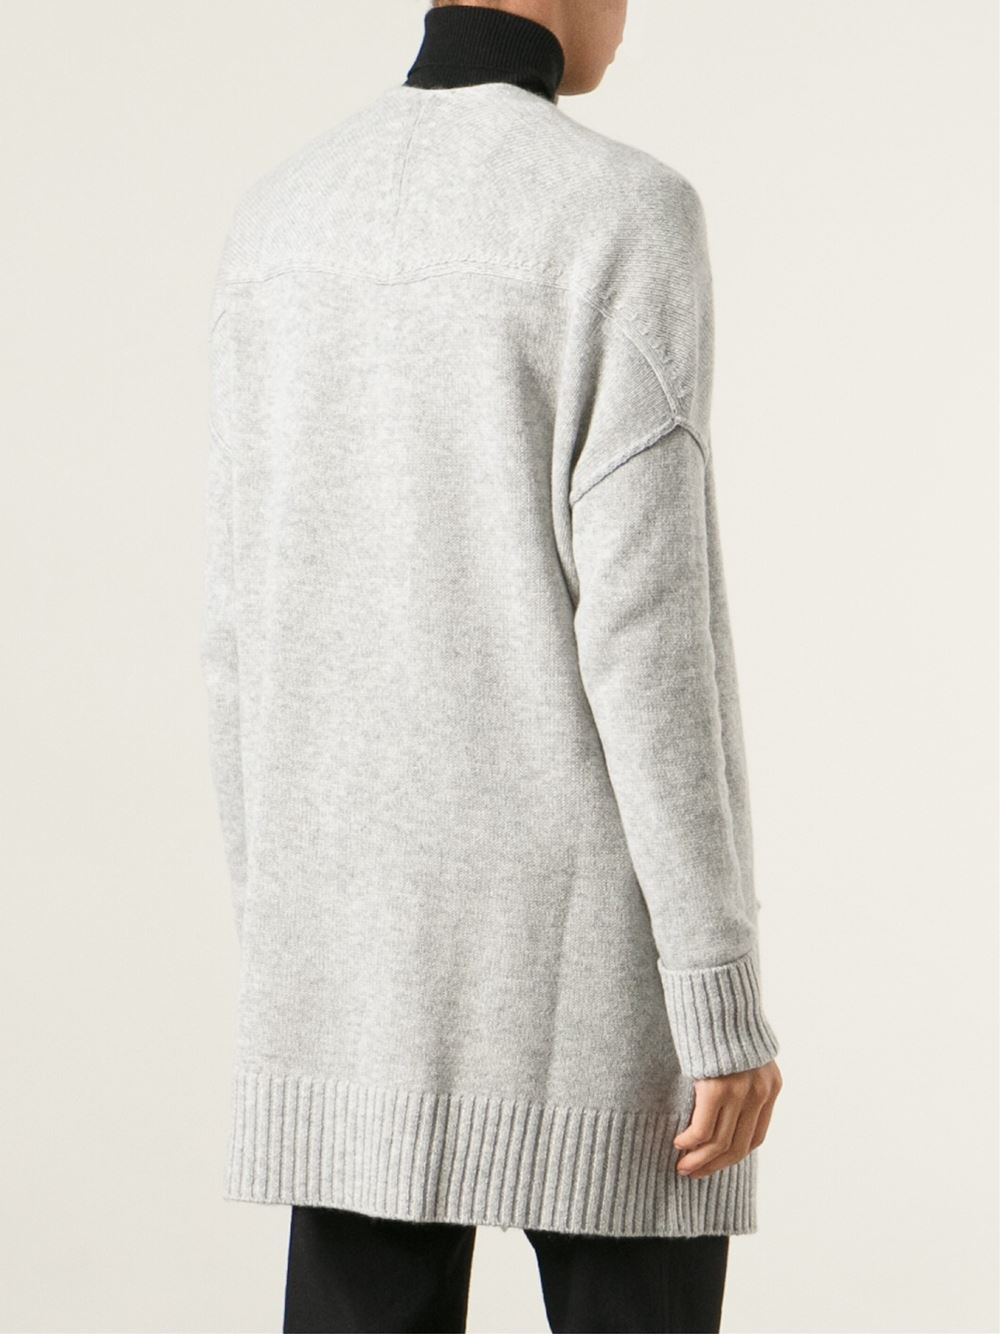 Forte Forte open front cardigan Outlet Online Shop Cheap Marketable Free Shipping From China bKSVRwbBp